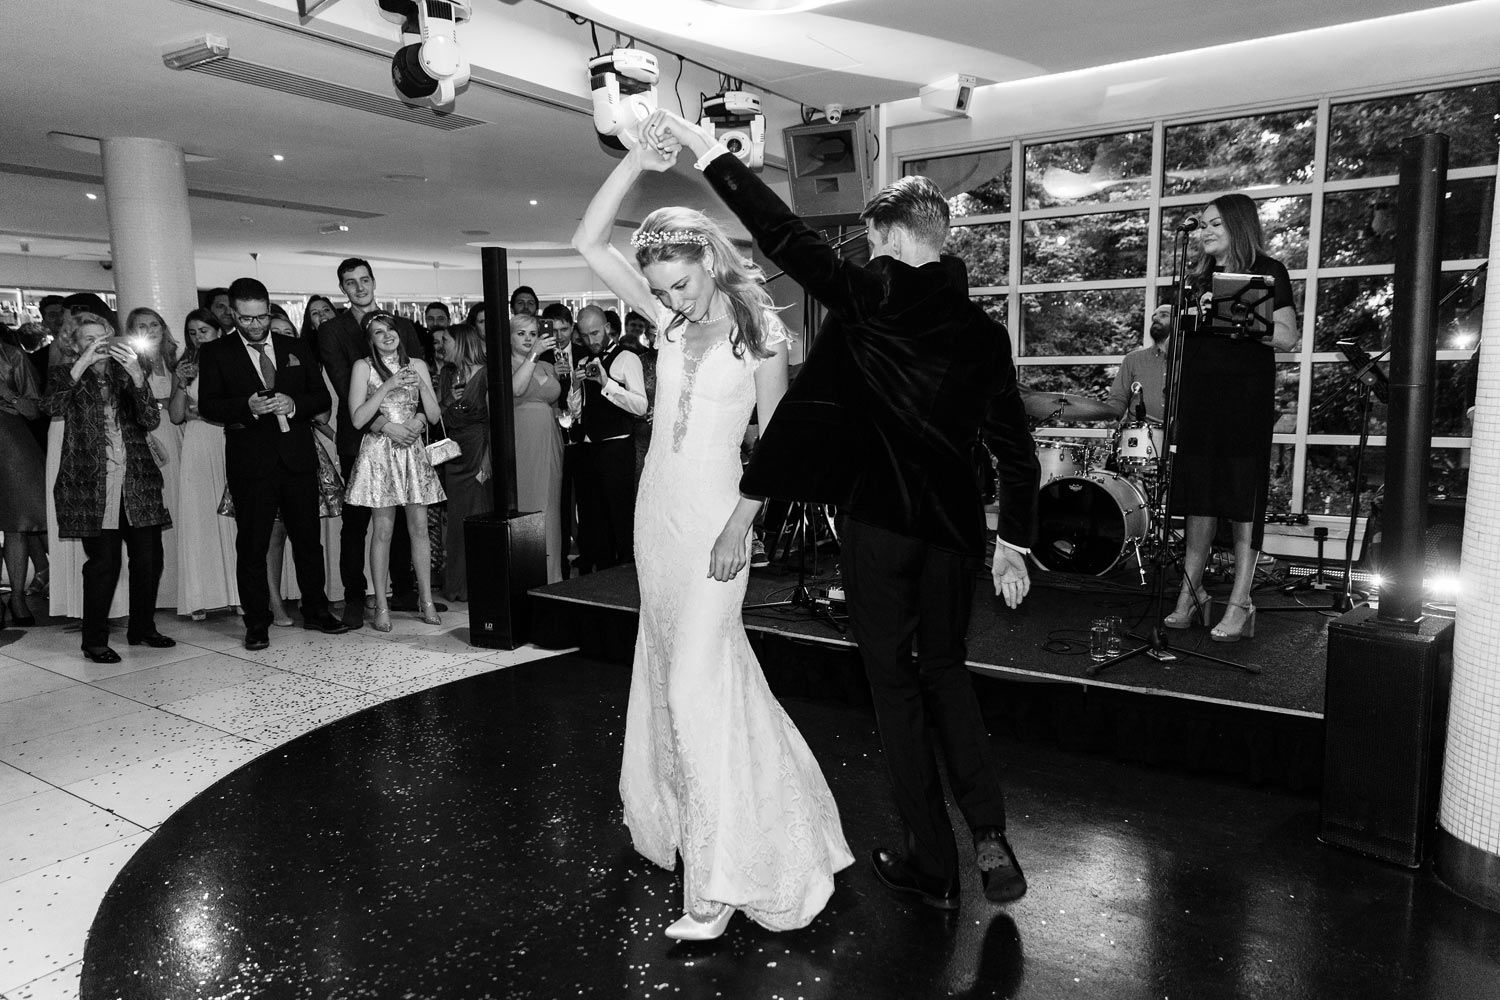 The first wedding dance at the Roof Gardens in Kensington - London wedding photographer